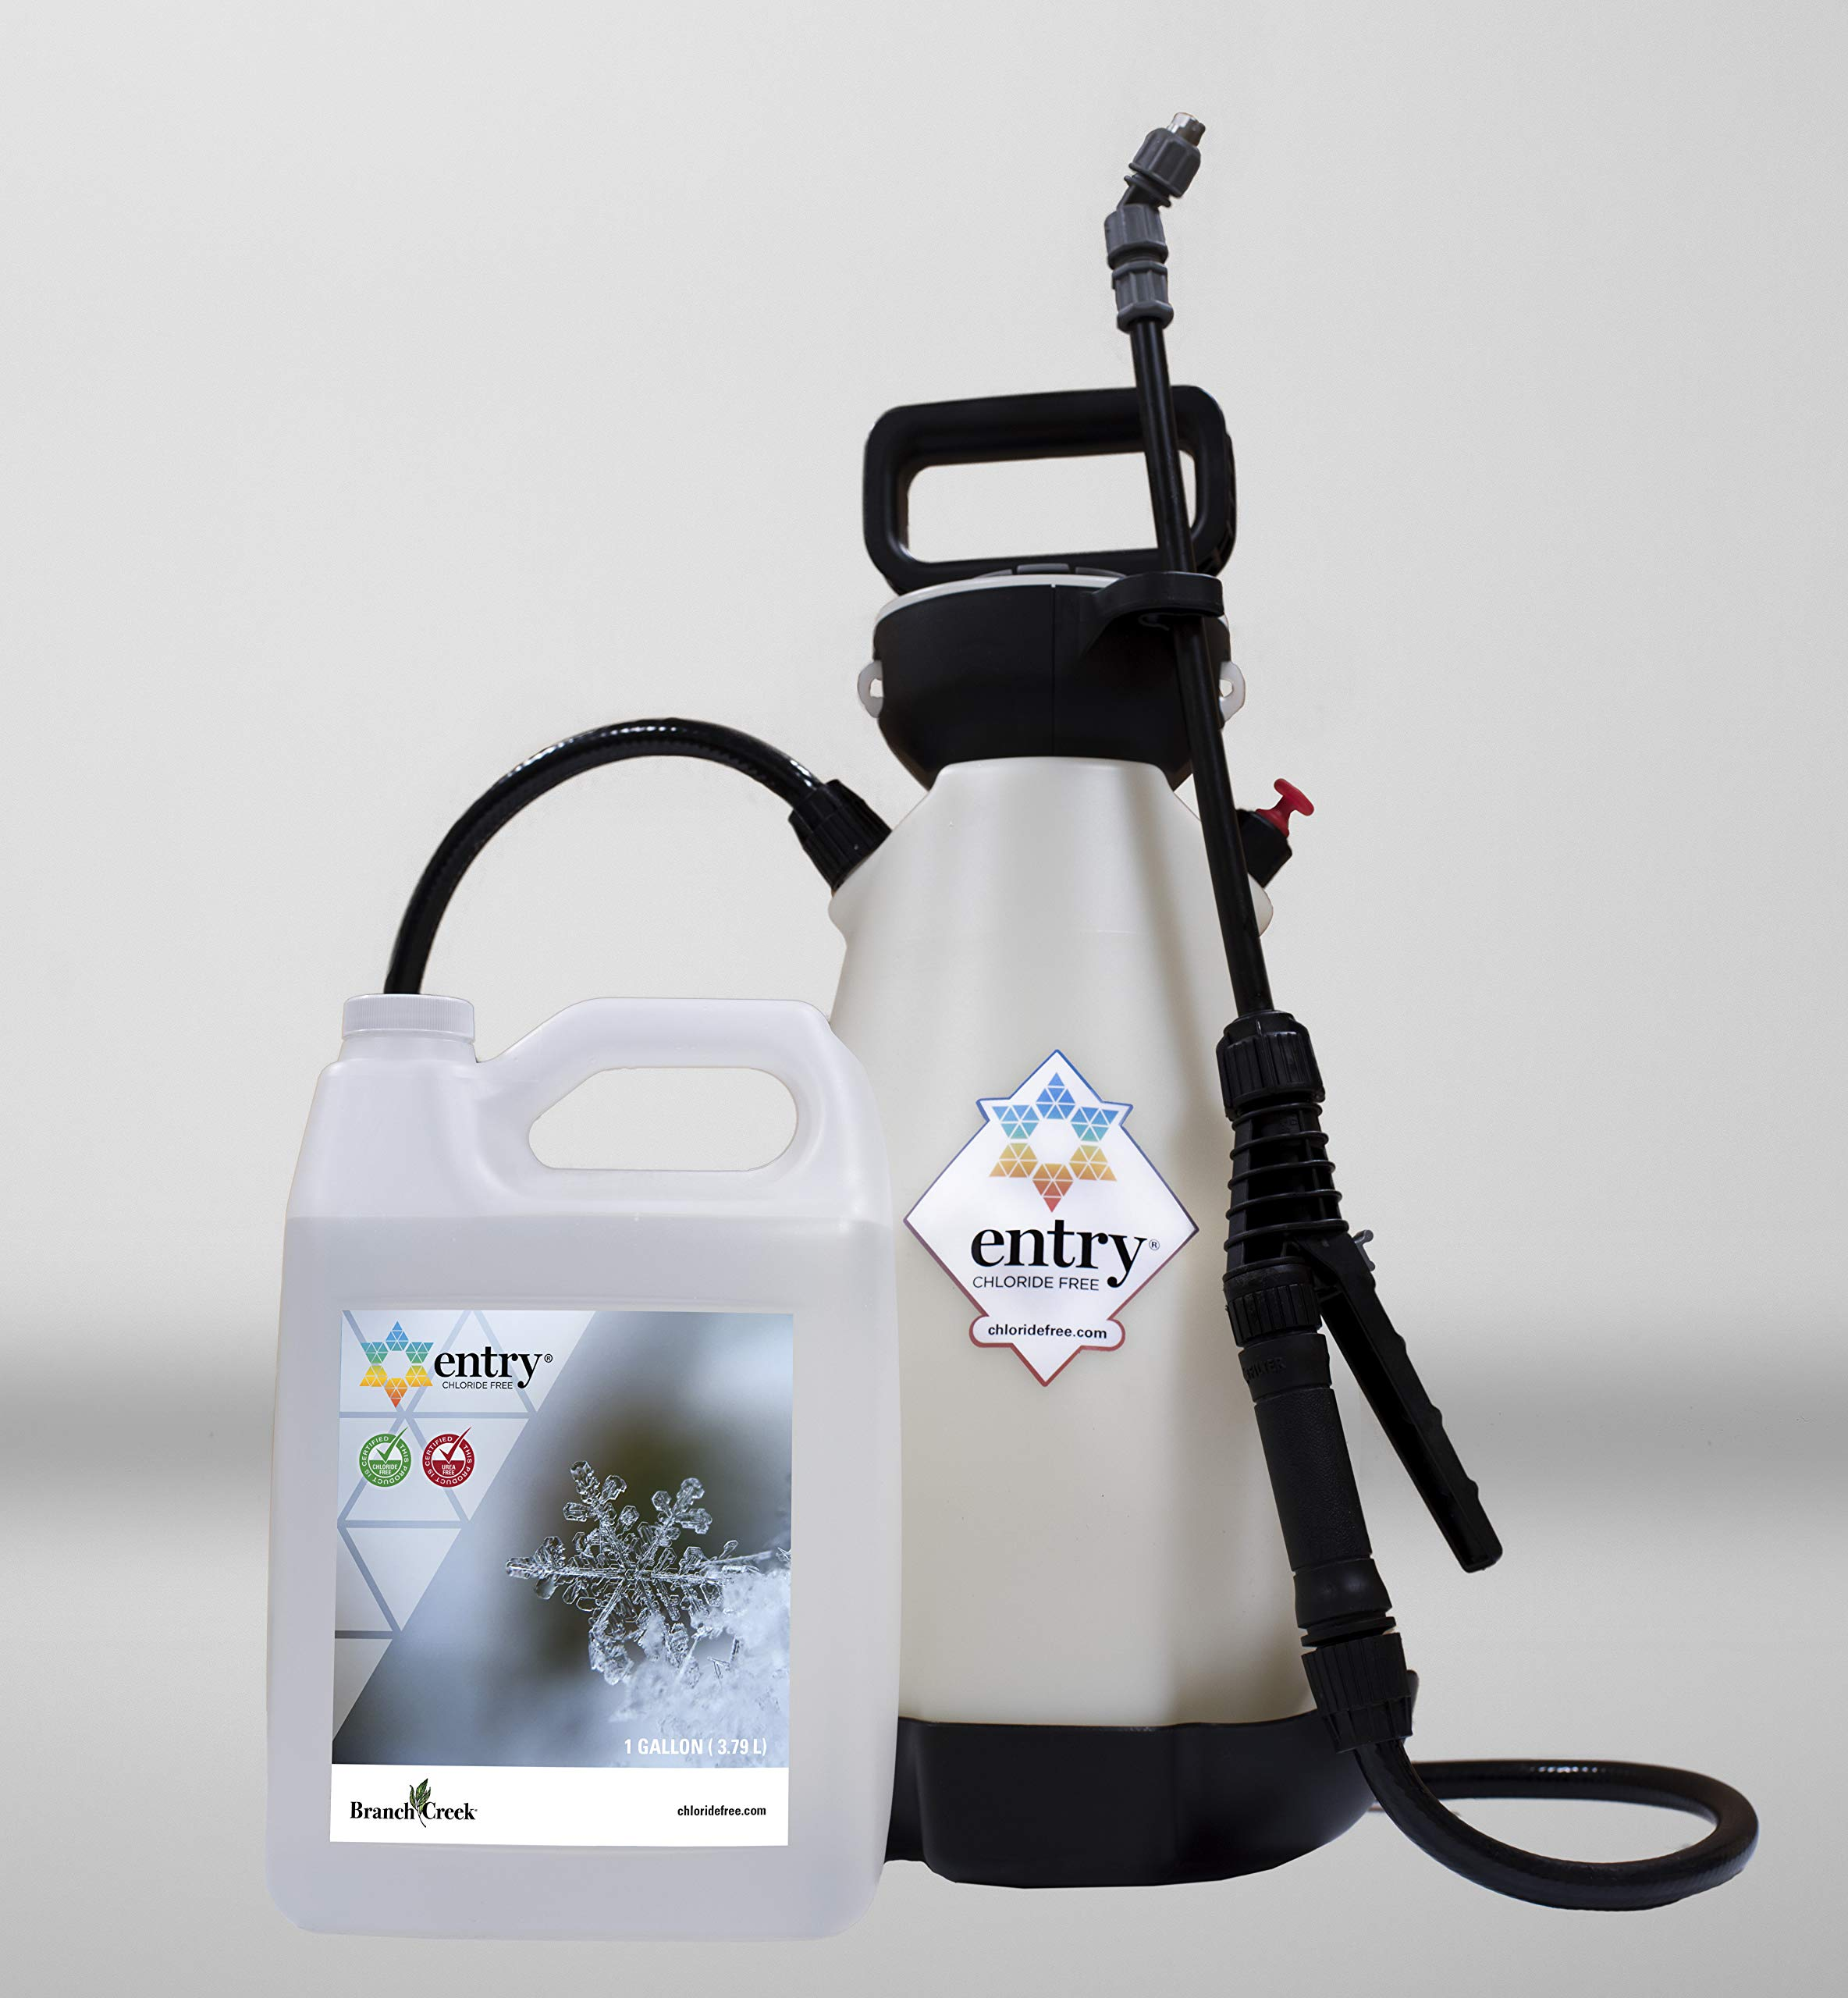 Branch Creek Entry Chloride-Free, Non-Toxic Liquid Ice Melt and Manual Pump Sprayer Bundle-Quick, Clean and Optimal Application-for Entrances of Commercial and Larger Residential Properties (1 Gallon)